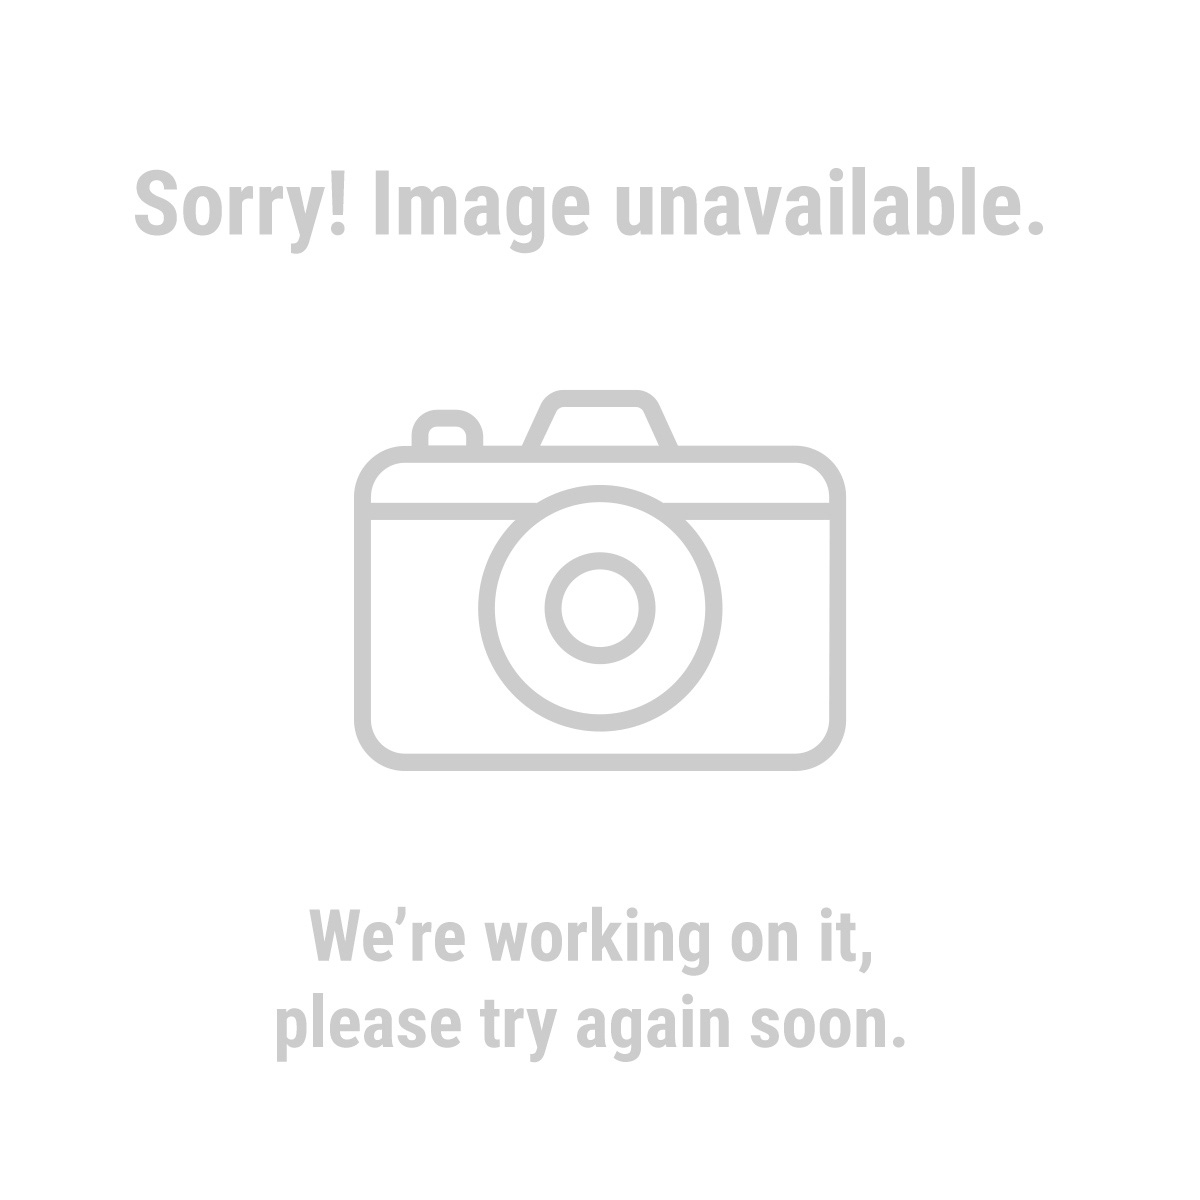 Badland Winches 61325 9000 lb. Off-Road Vehicle Electric Winch with Automatic Load-Holding Brake